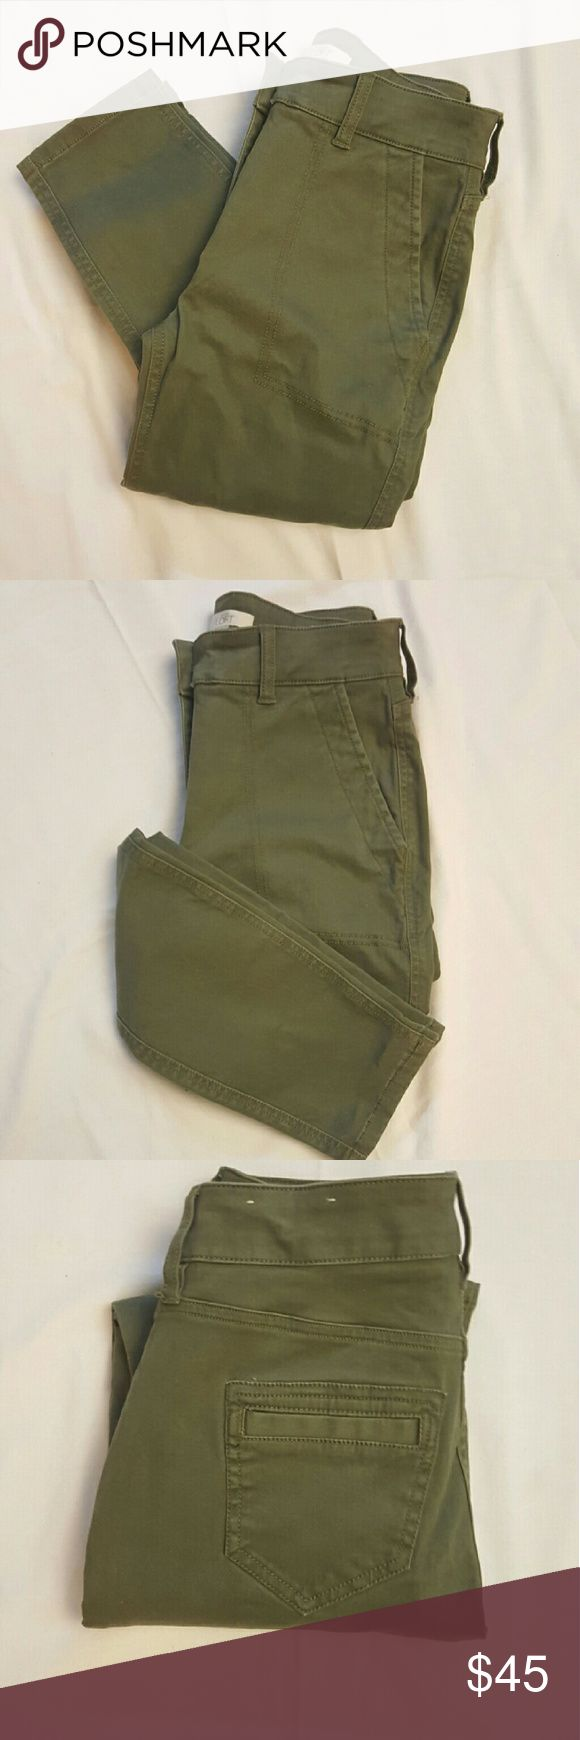 LOFT  green skinny pants Loft army green high wasted skinny pants in great condition. 13in waist and 27in inseam. LOFT Pants